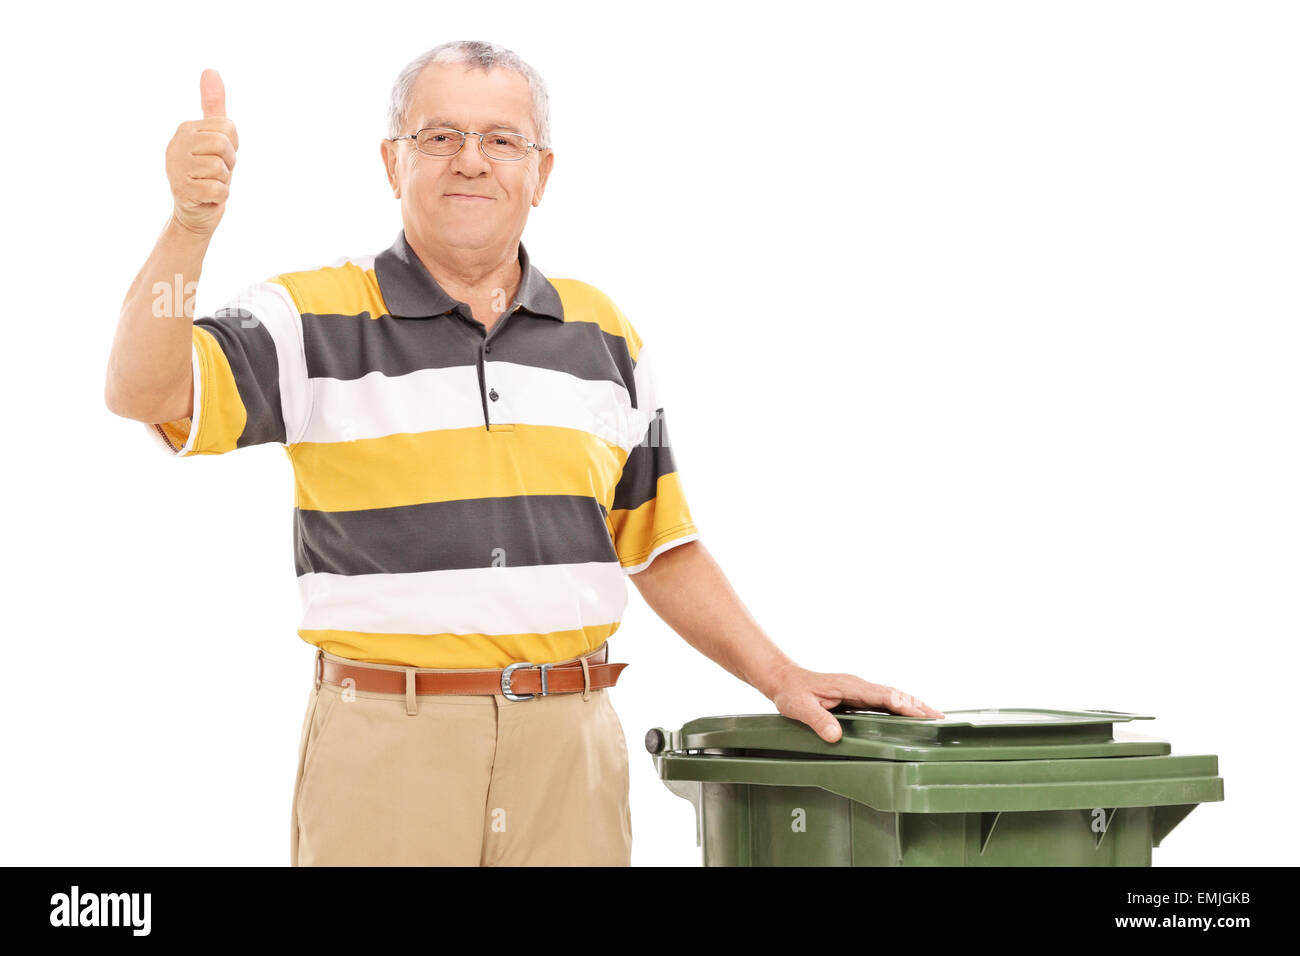 Satisfied senior standing by a trash can isolated on white background - Stock Image